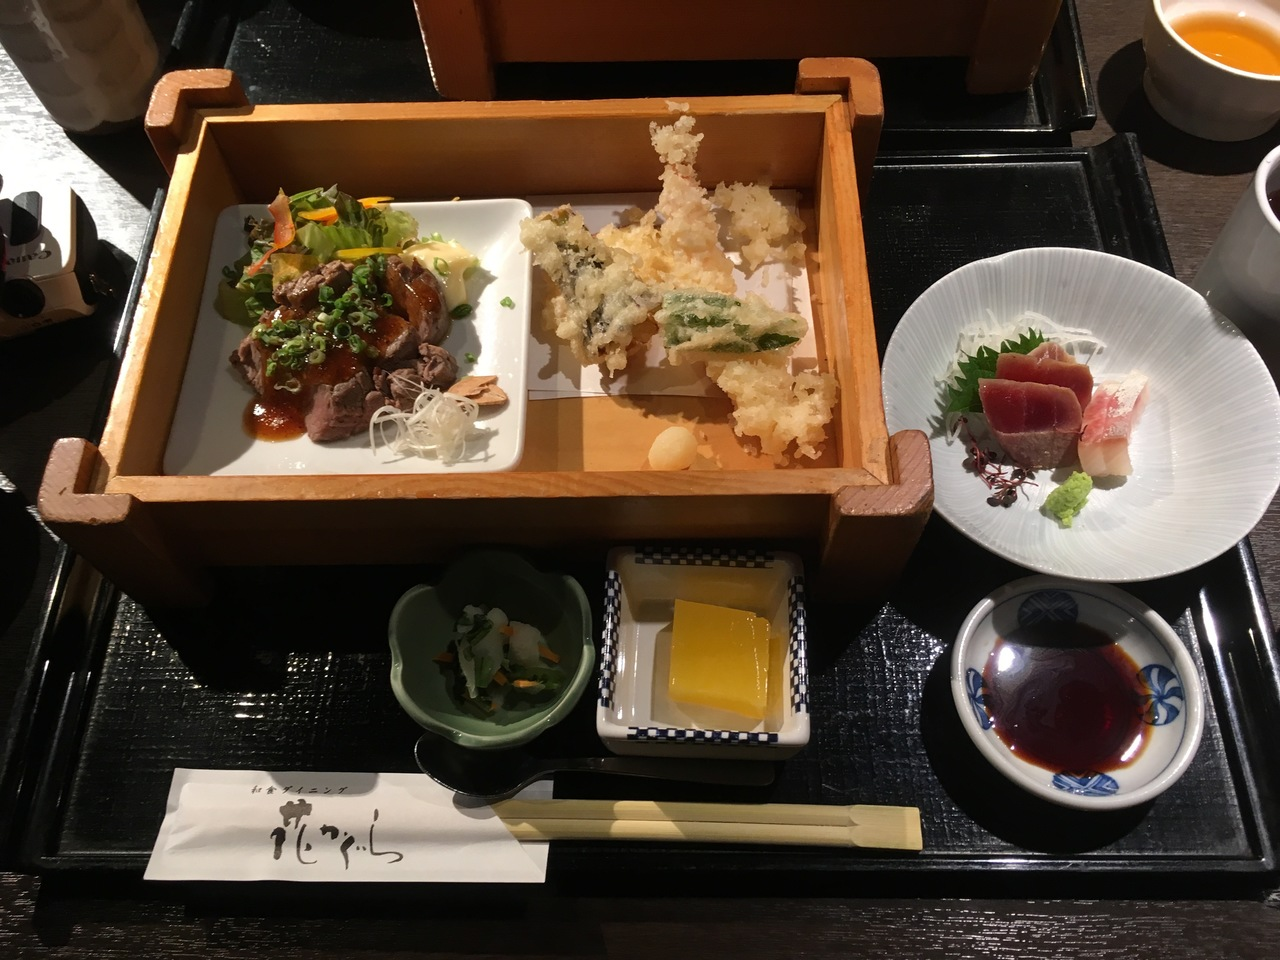 Lunch Tour in Kagurazaka - Hanakagura